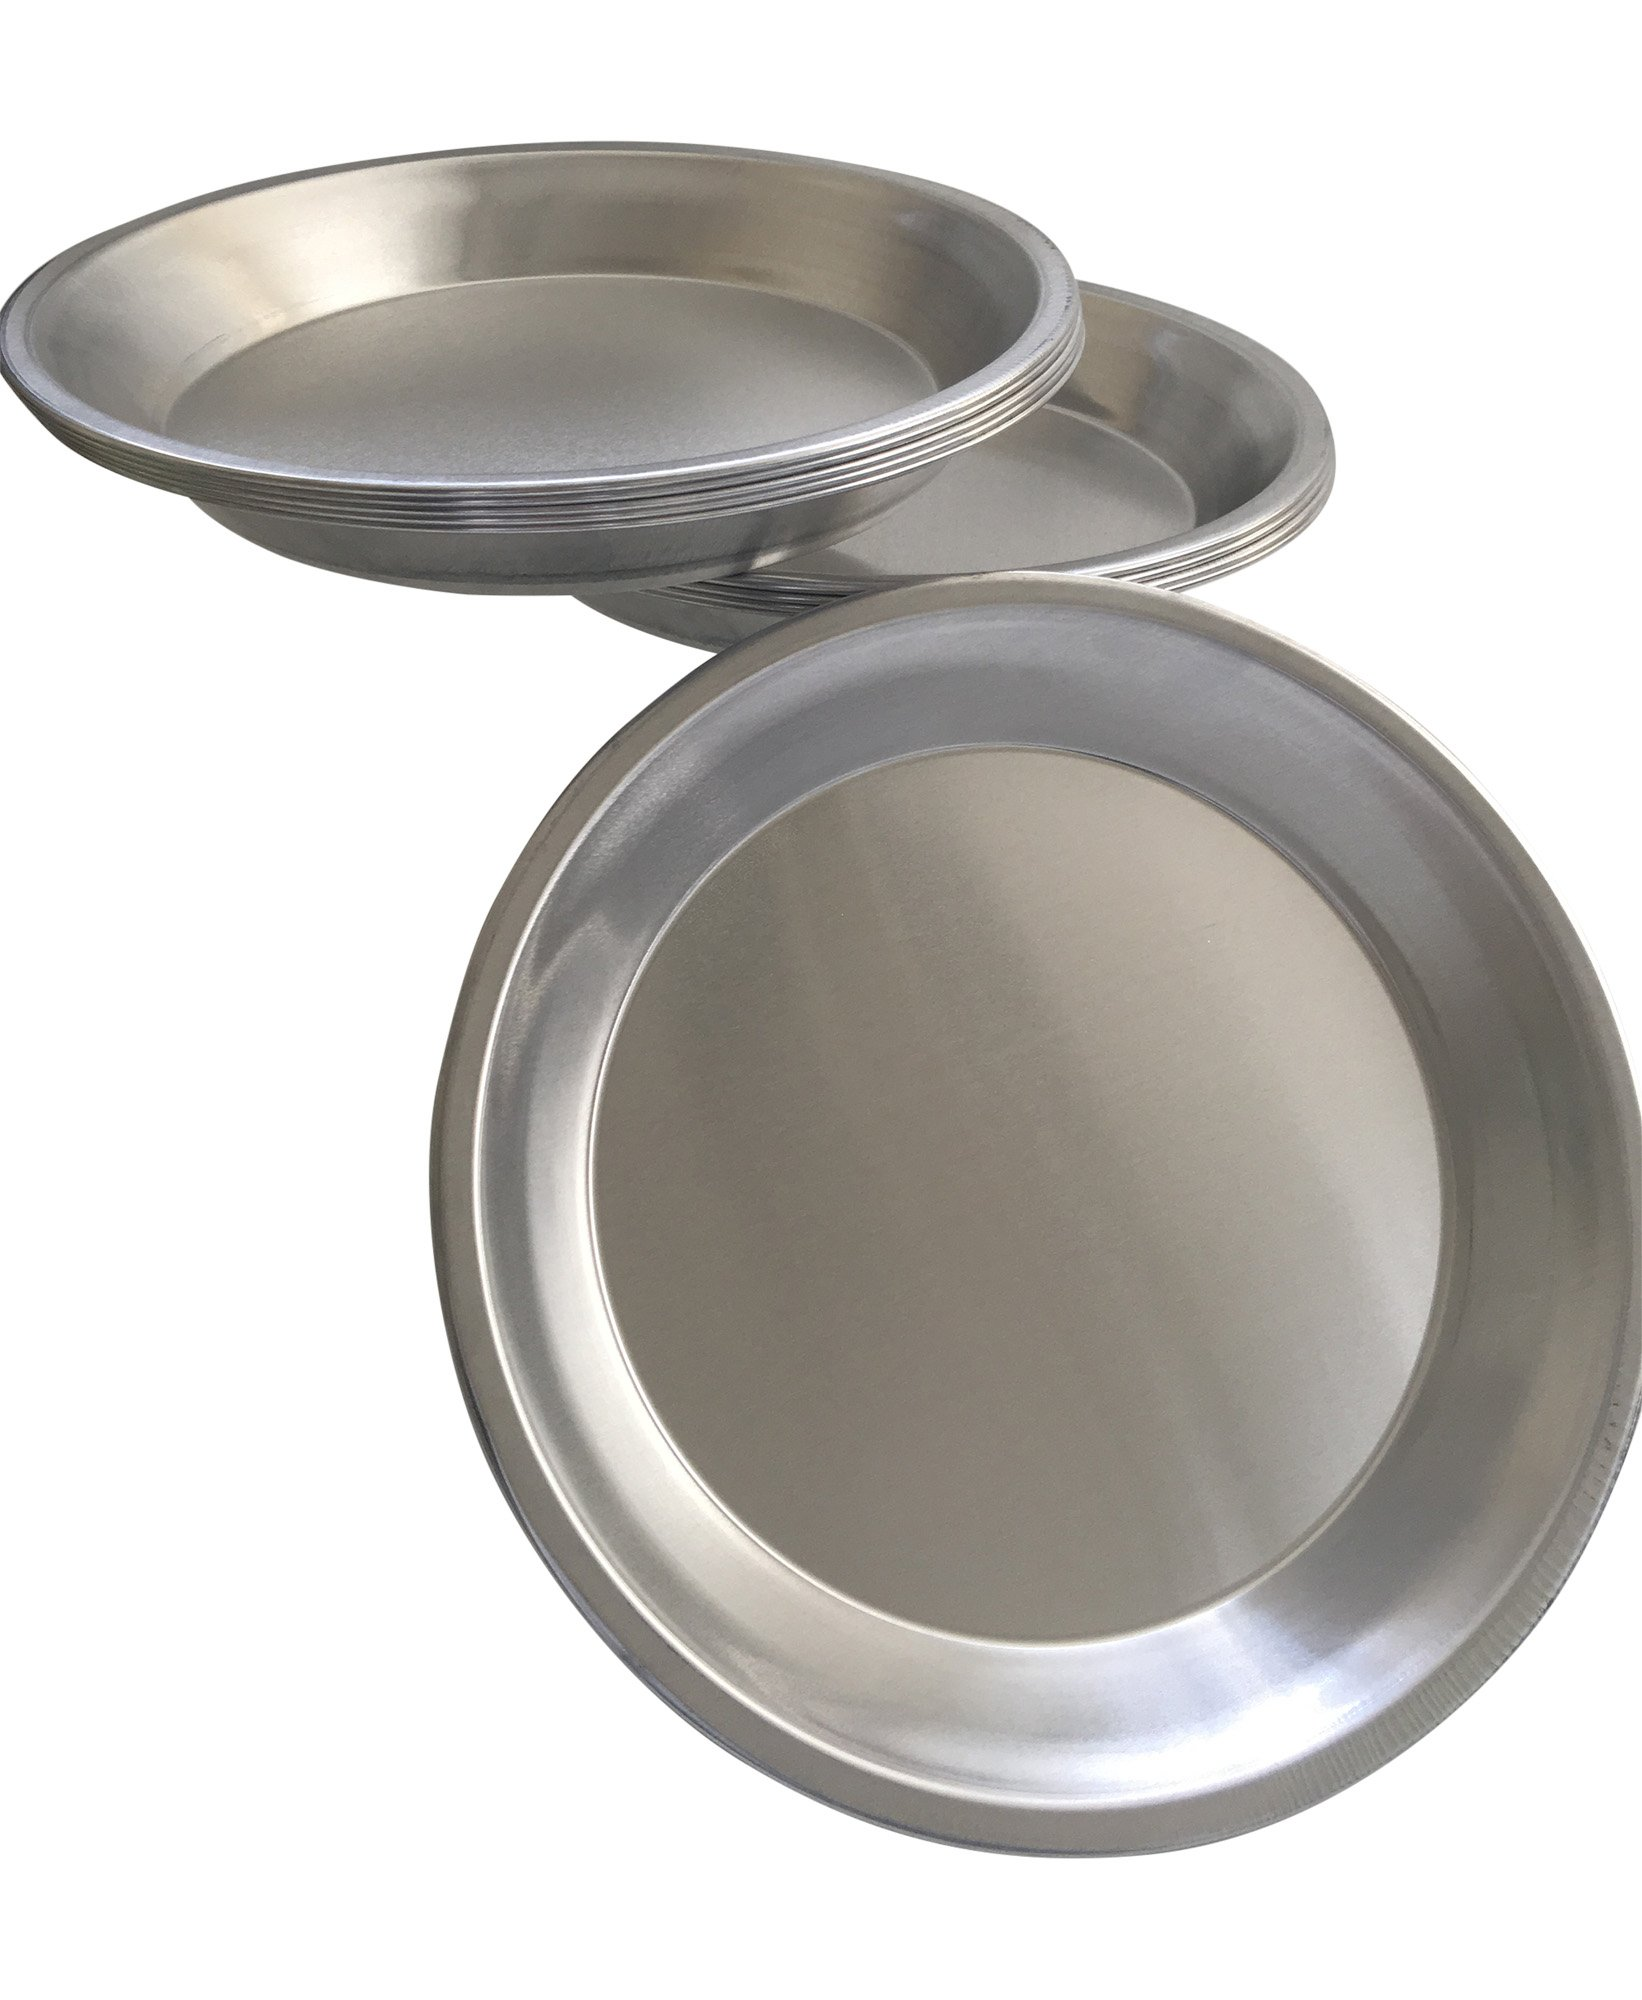 Pie Plate Aluminum Metal 9 Inch pan - Set of 10